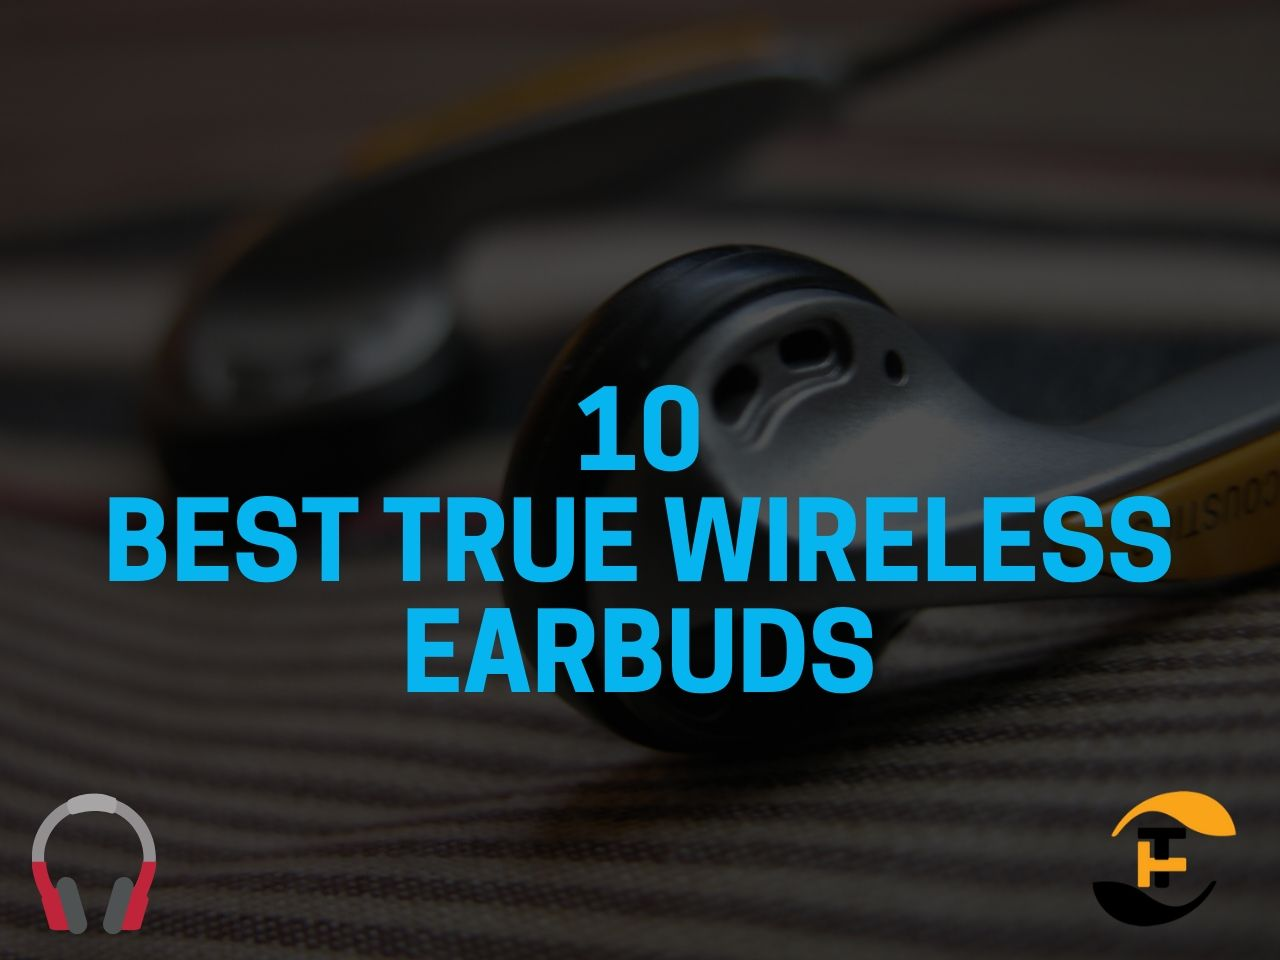 10 Best True Wireless Earbuds